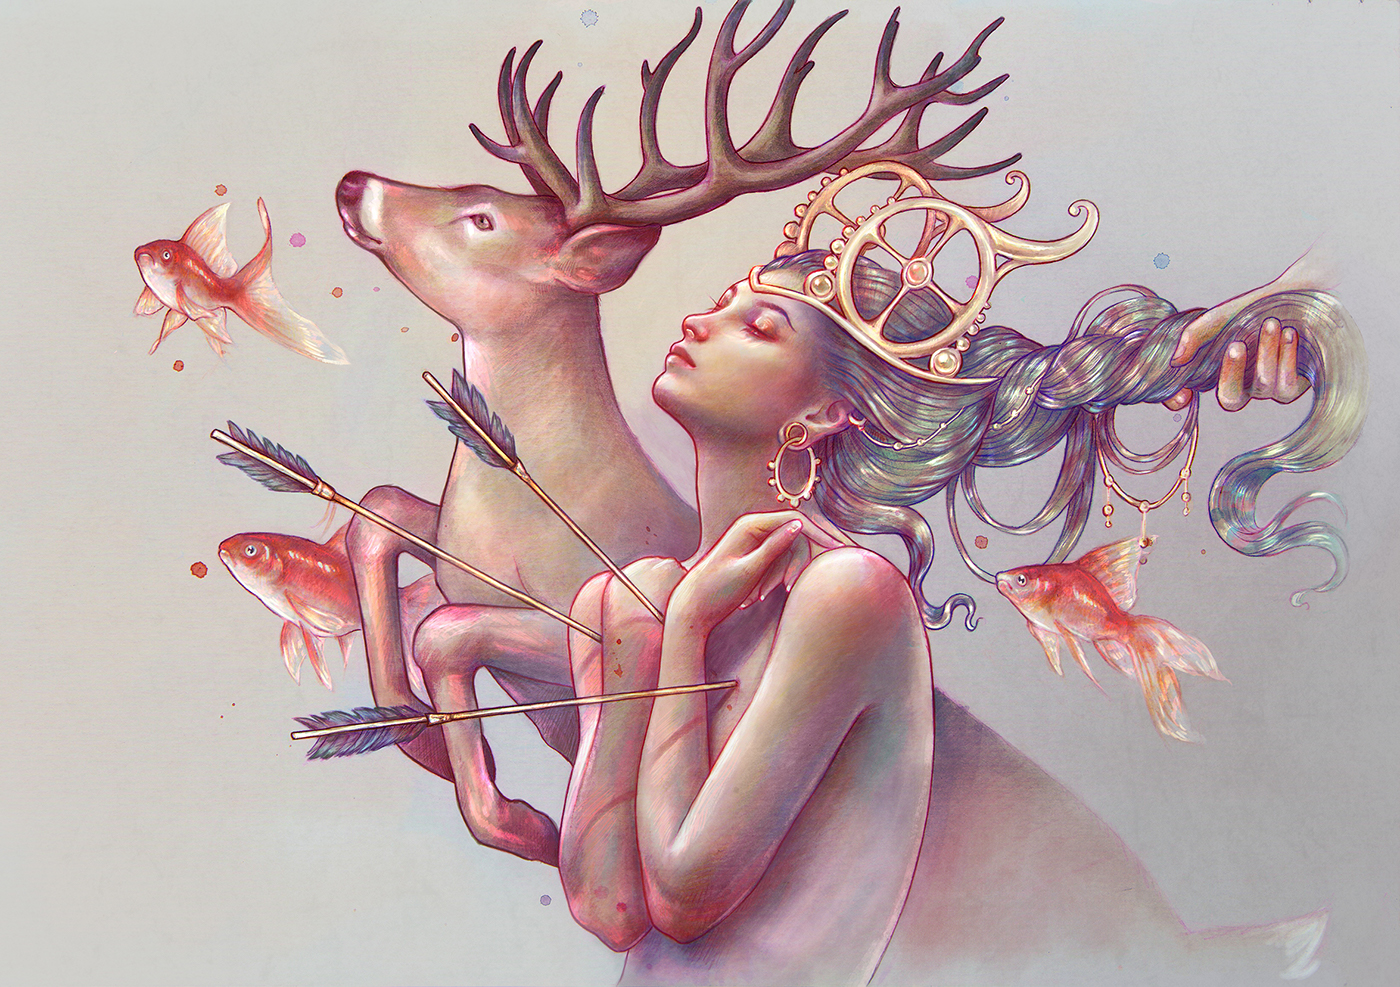 The Beauty of Female Figures in illustrations by Spanish Illustrator Marta Adán (8)